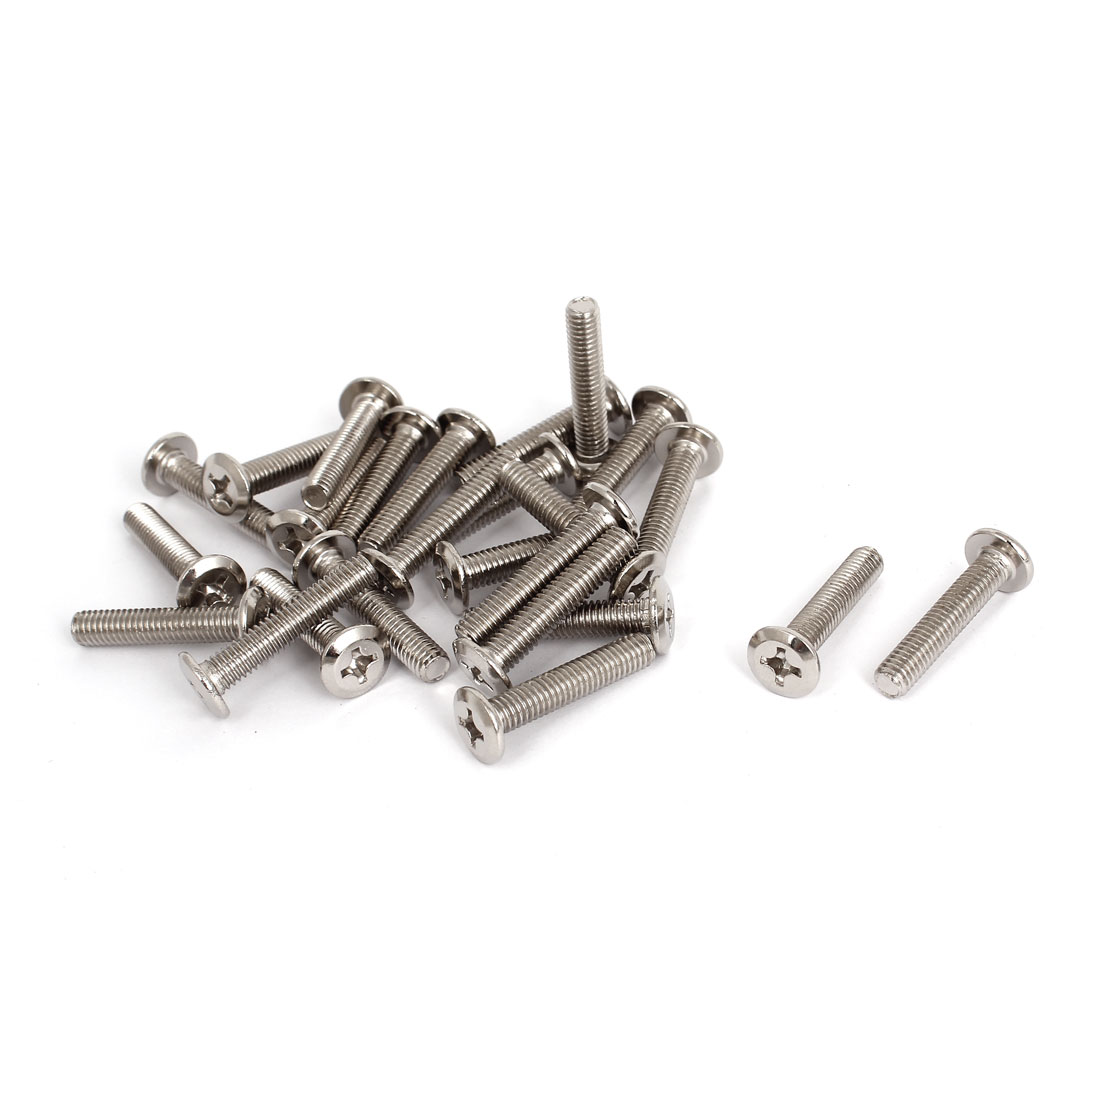 25 Pcs M6x30mm Phillips Socket Countersunk Screw Bolts Fasteners for Furniture